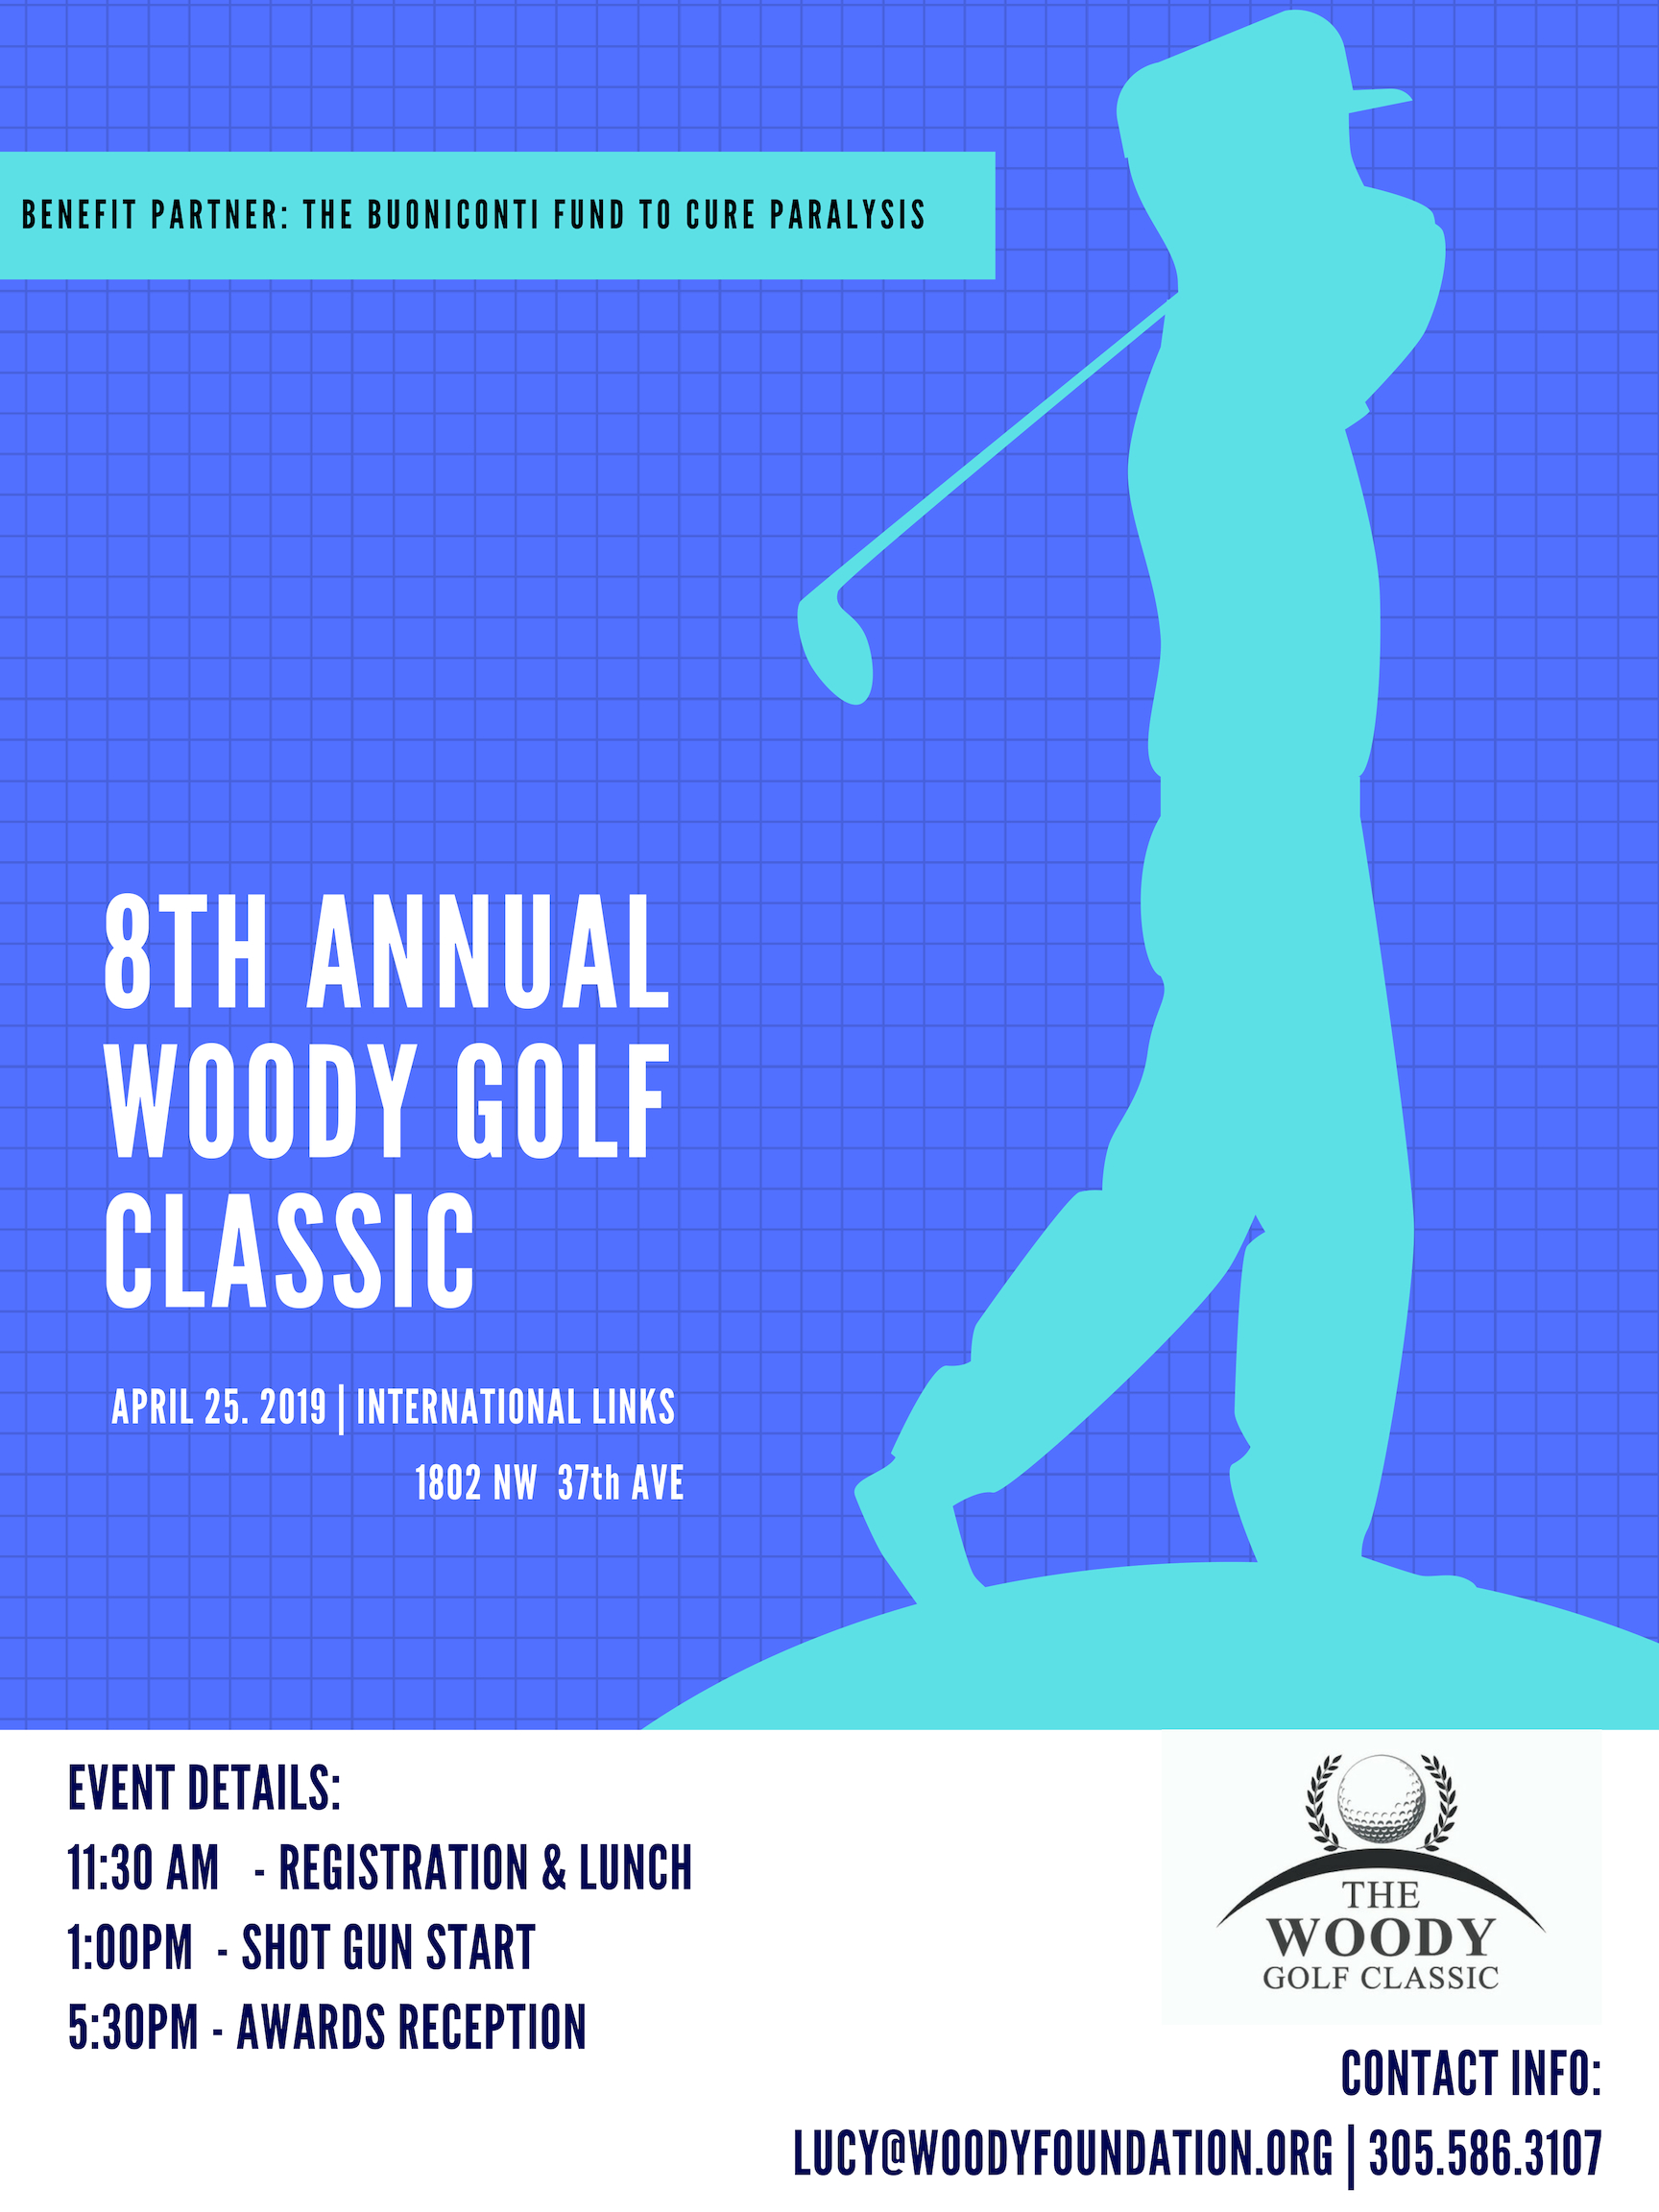 8th Annual Woody Golf Classic